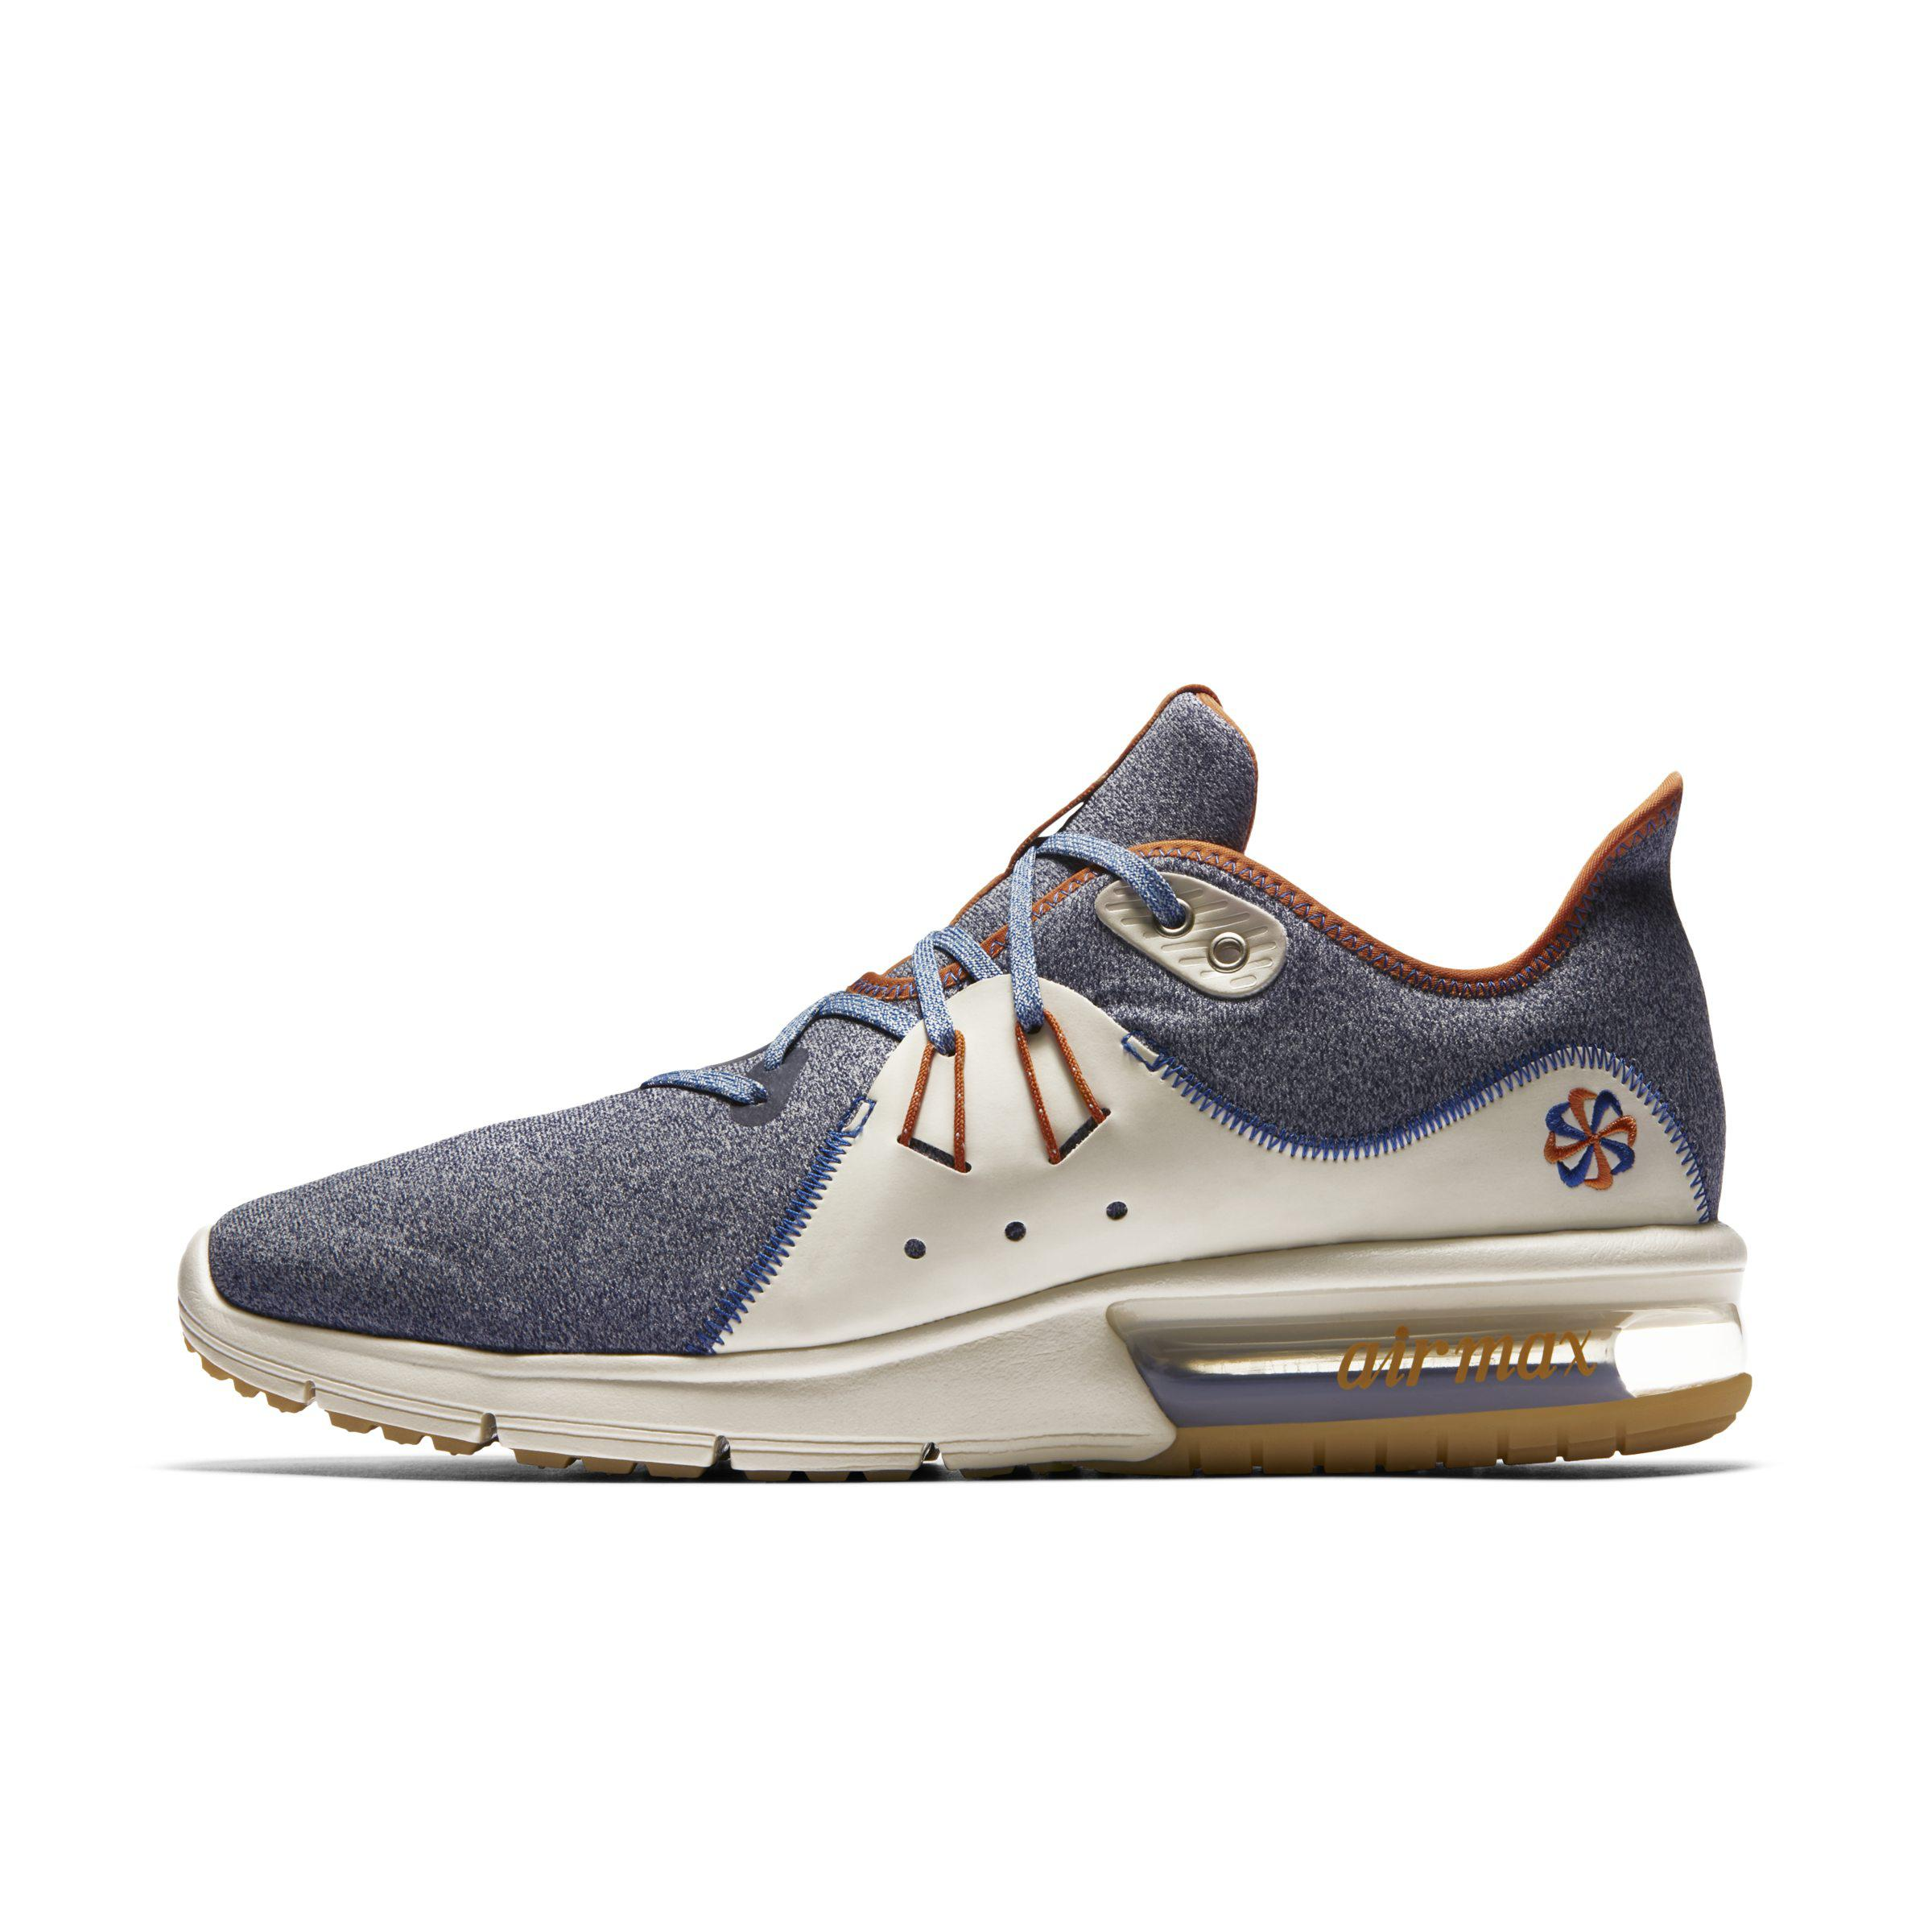 fd8ae13c46bd Nike Air Max Sequent 3 Premium Vst Running Shoe in Blue for Men - Lyst